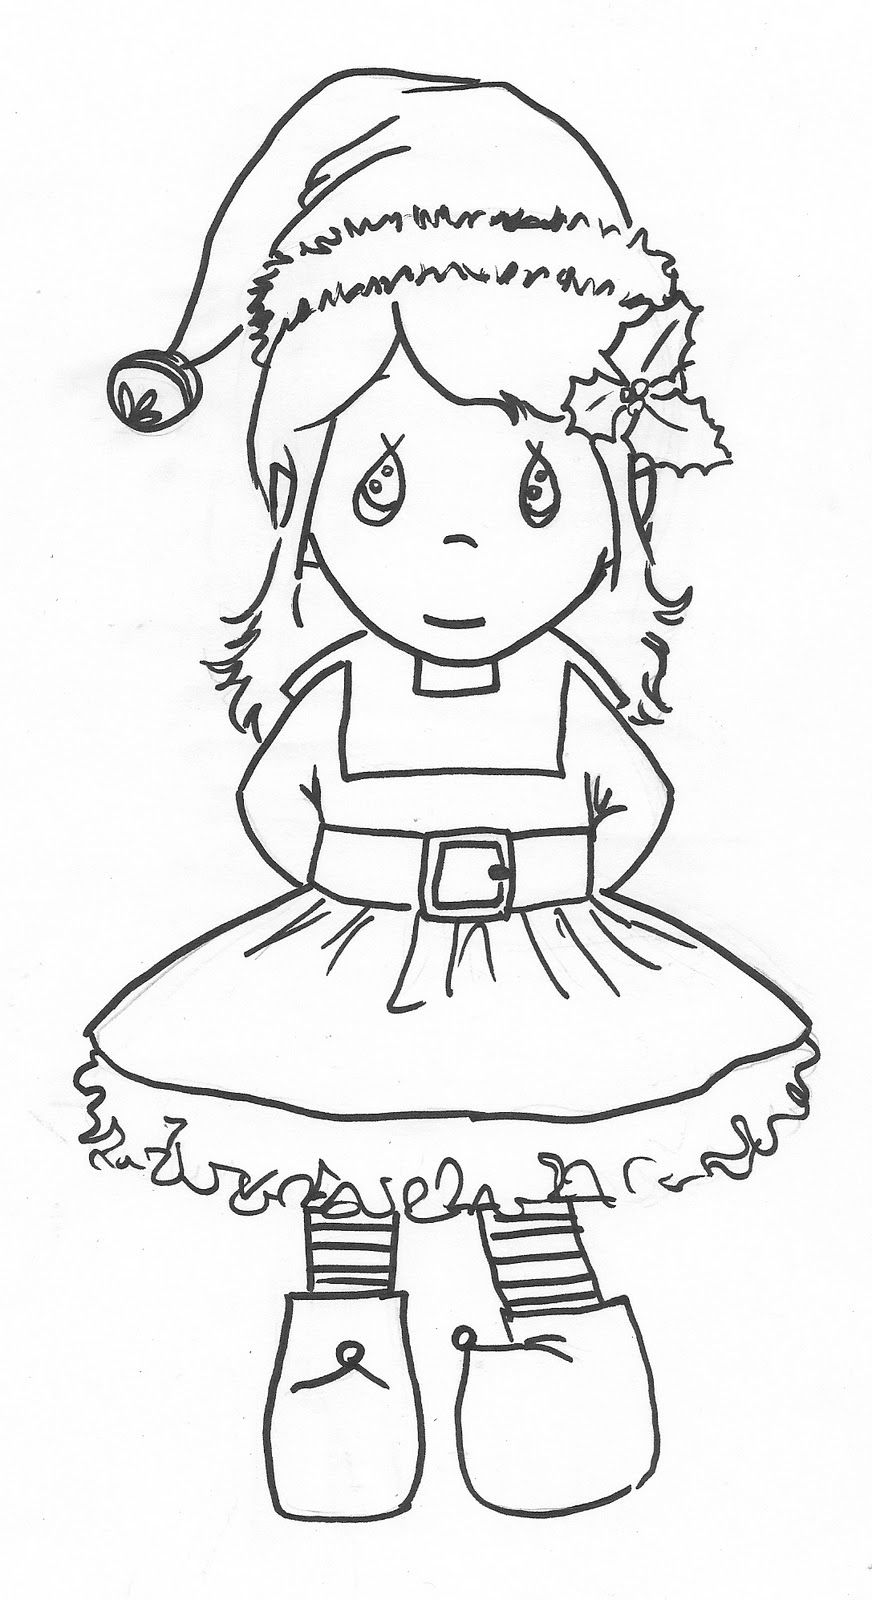 child-coloring-page-0010-q1